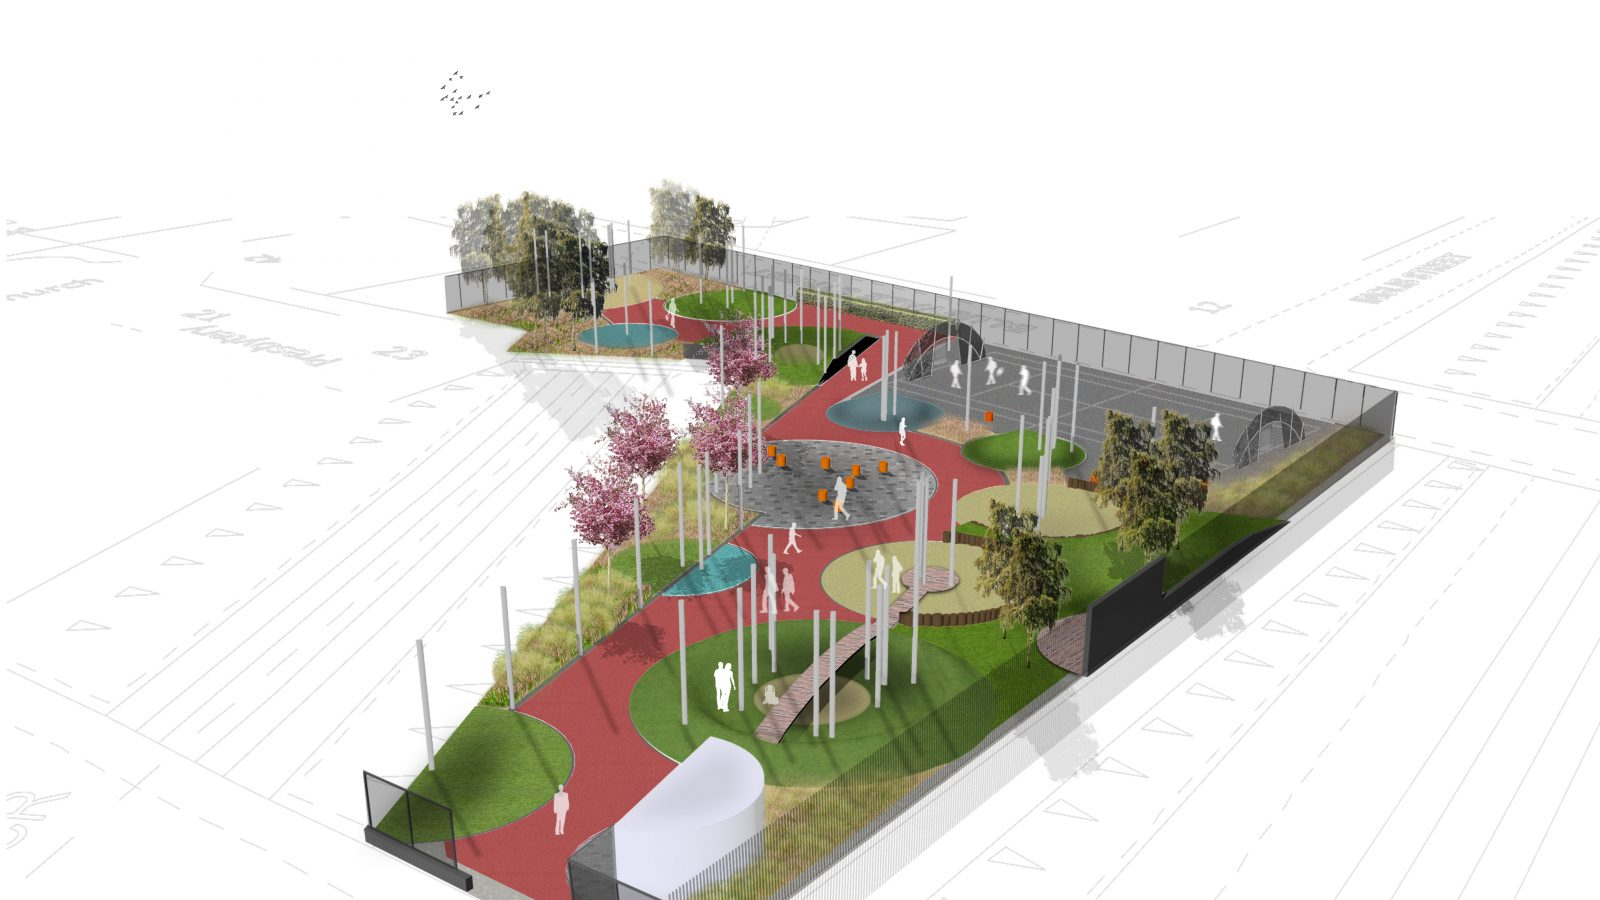 HS Appointed for Whitevale Park